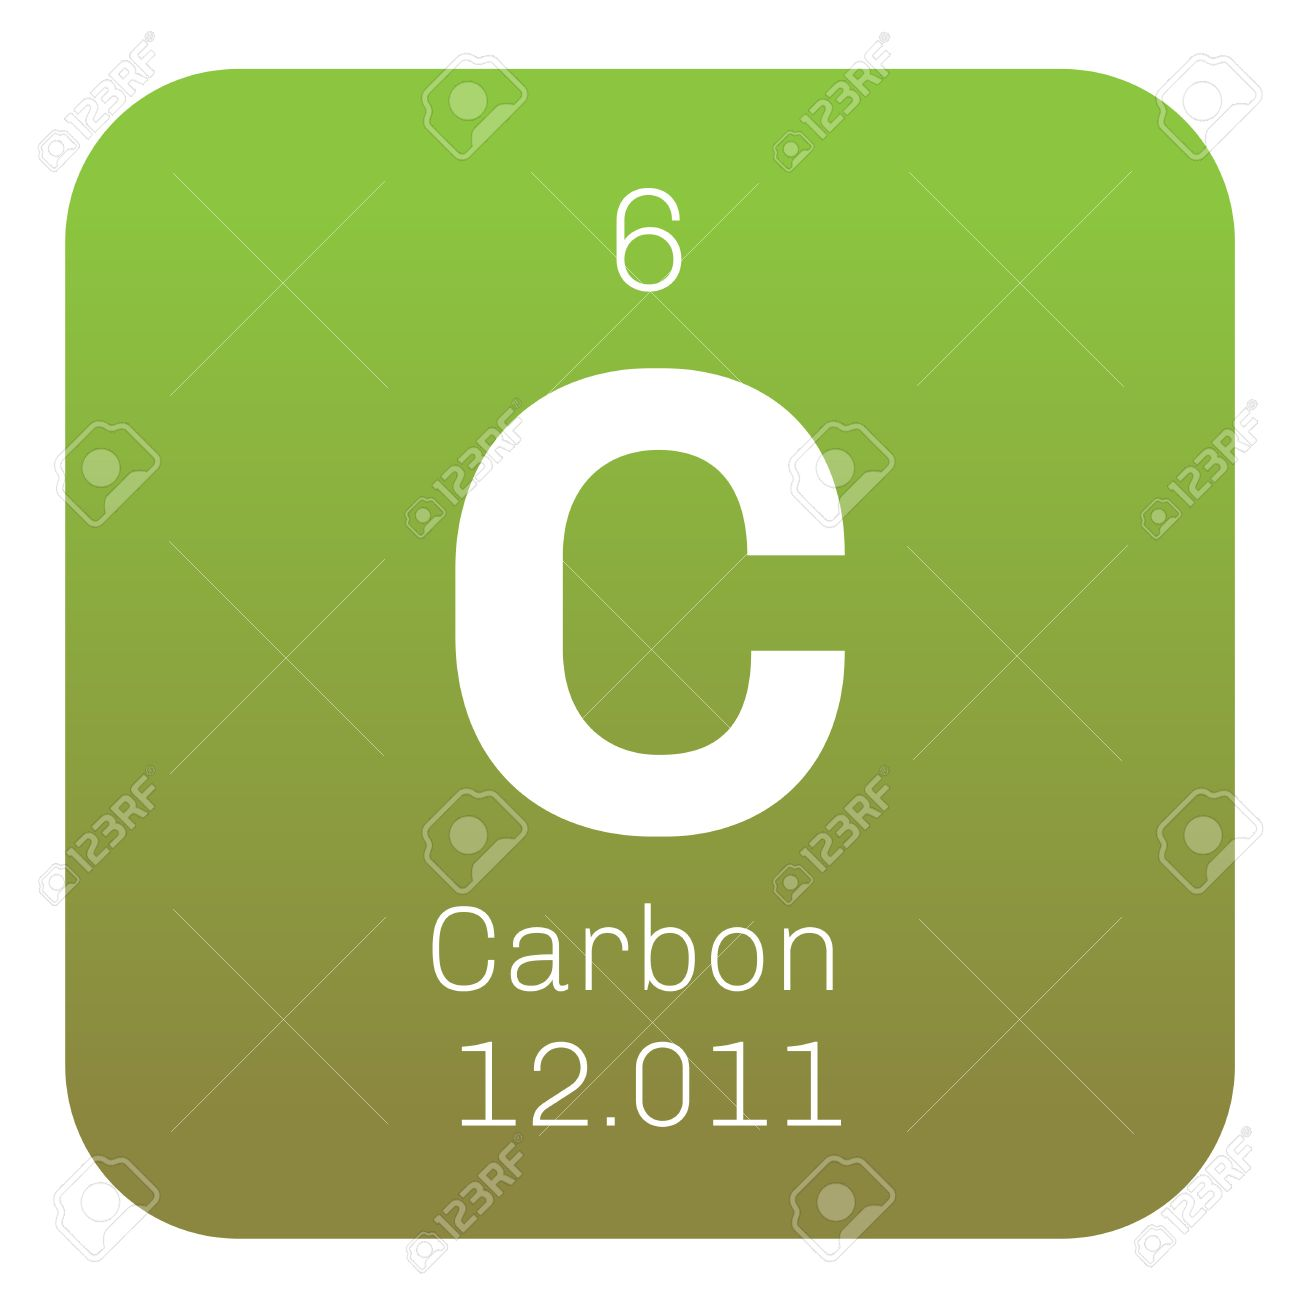 carbon chemical element graphite and diamond colored icon with